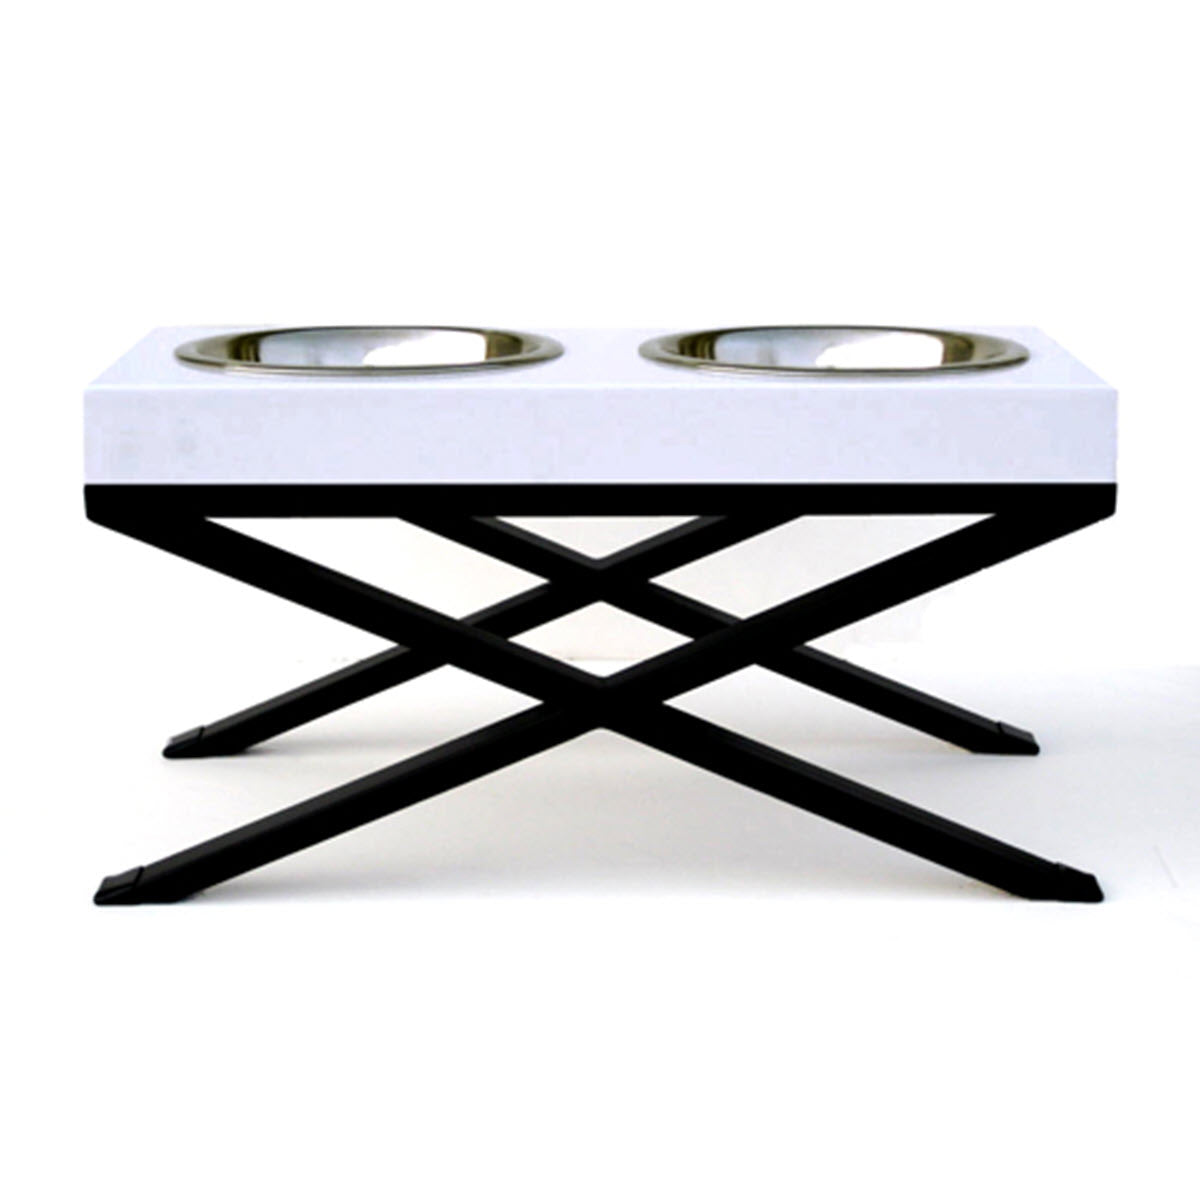 NMN Designs Woodsman elevated Dog Bowls double white